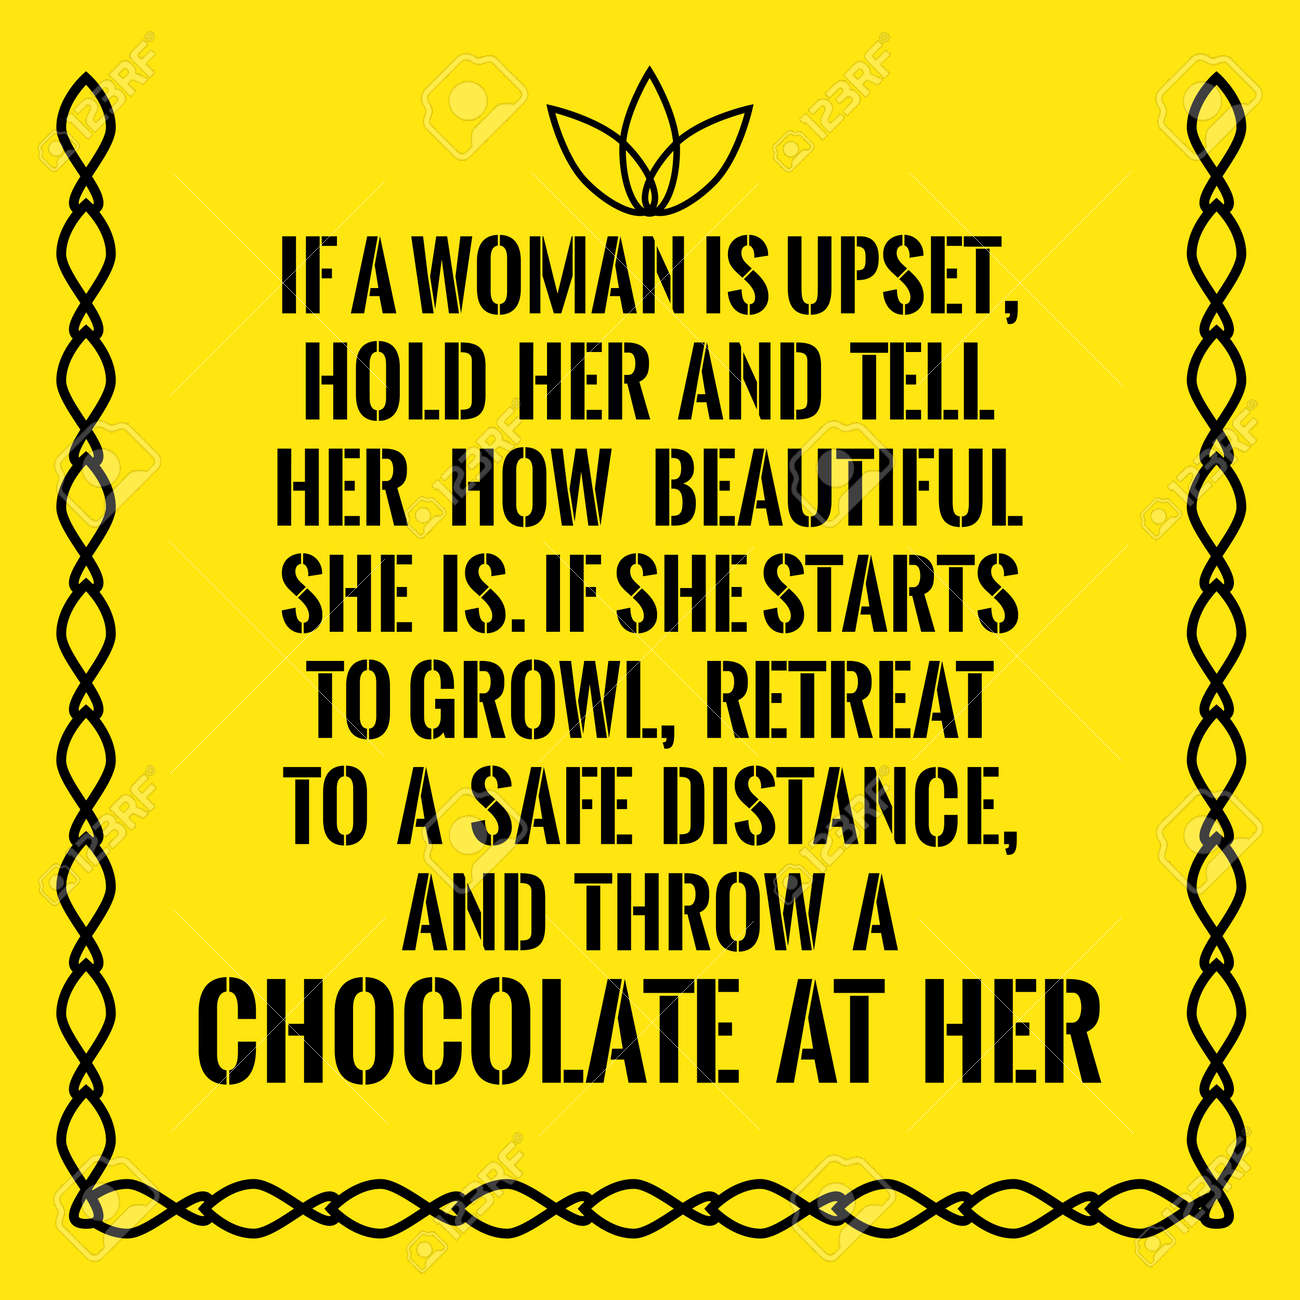 what to say to a woman when she is upset